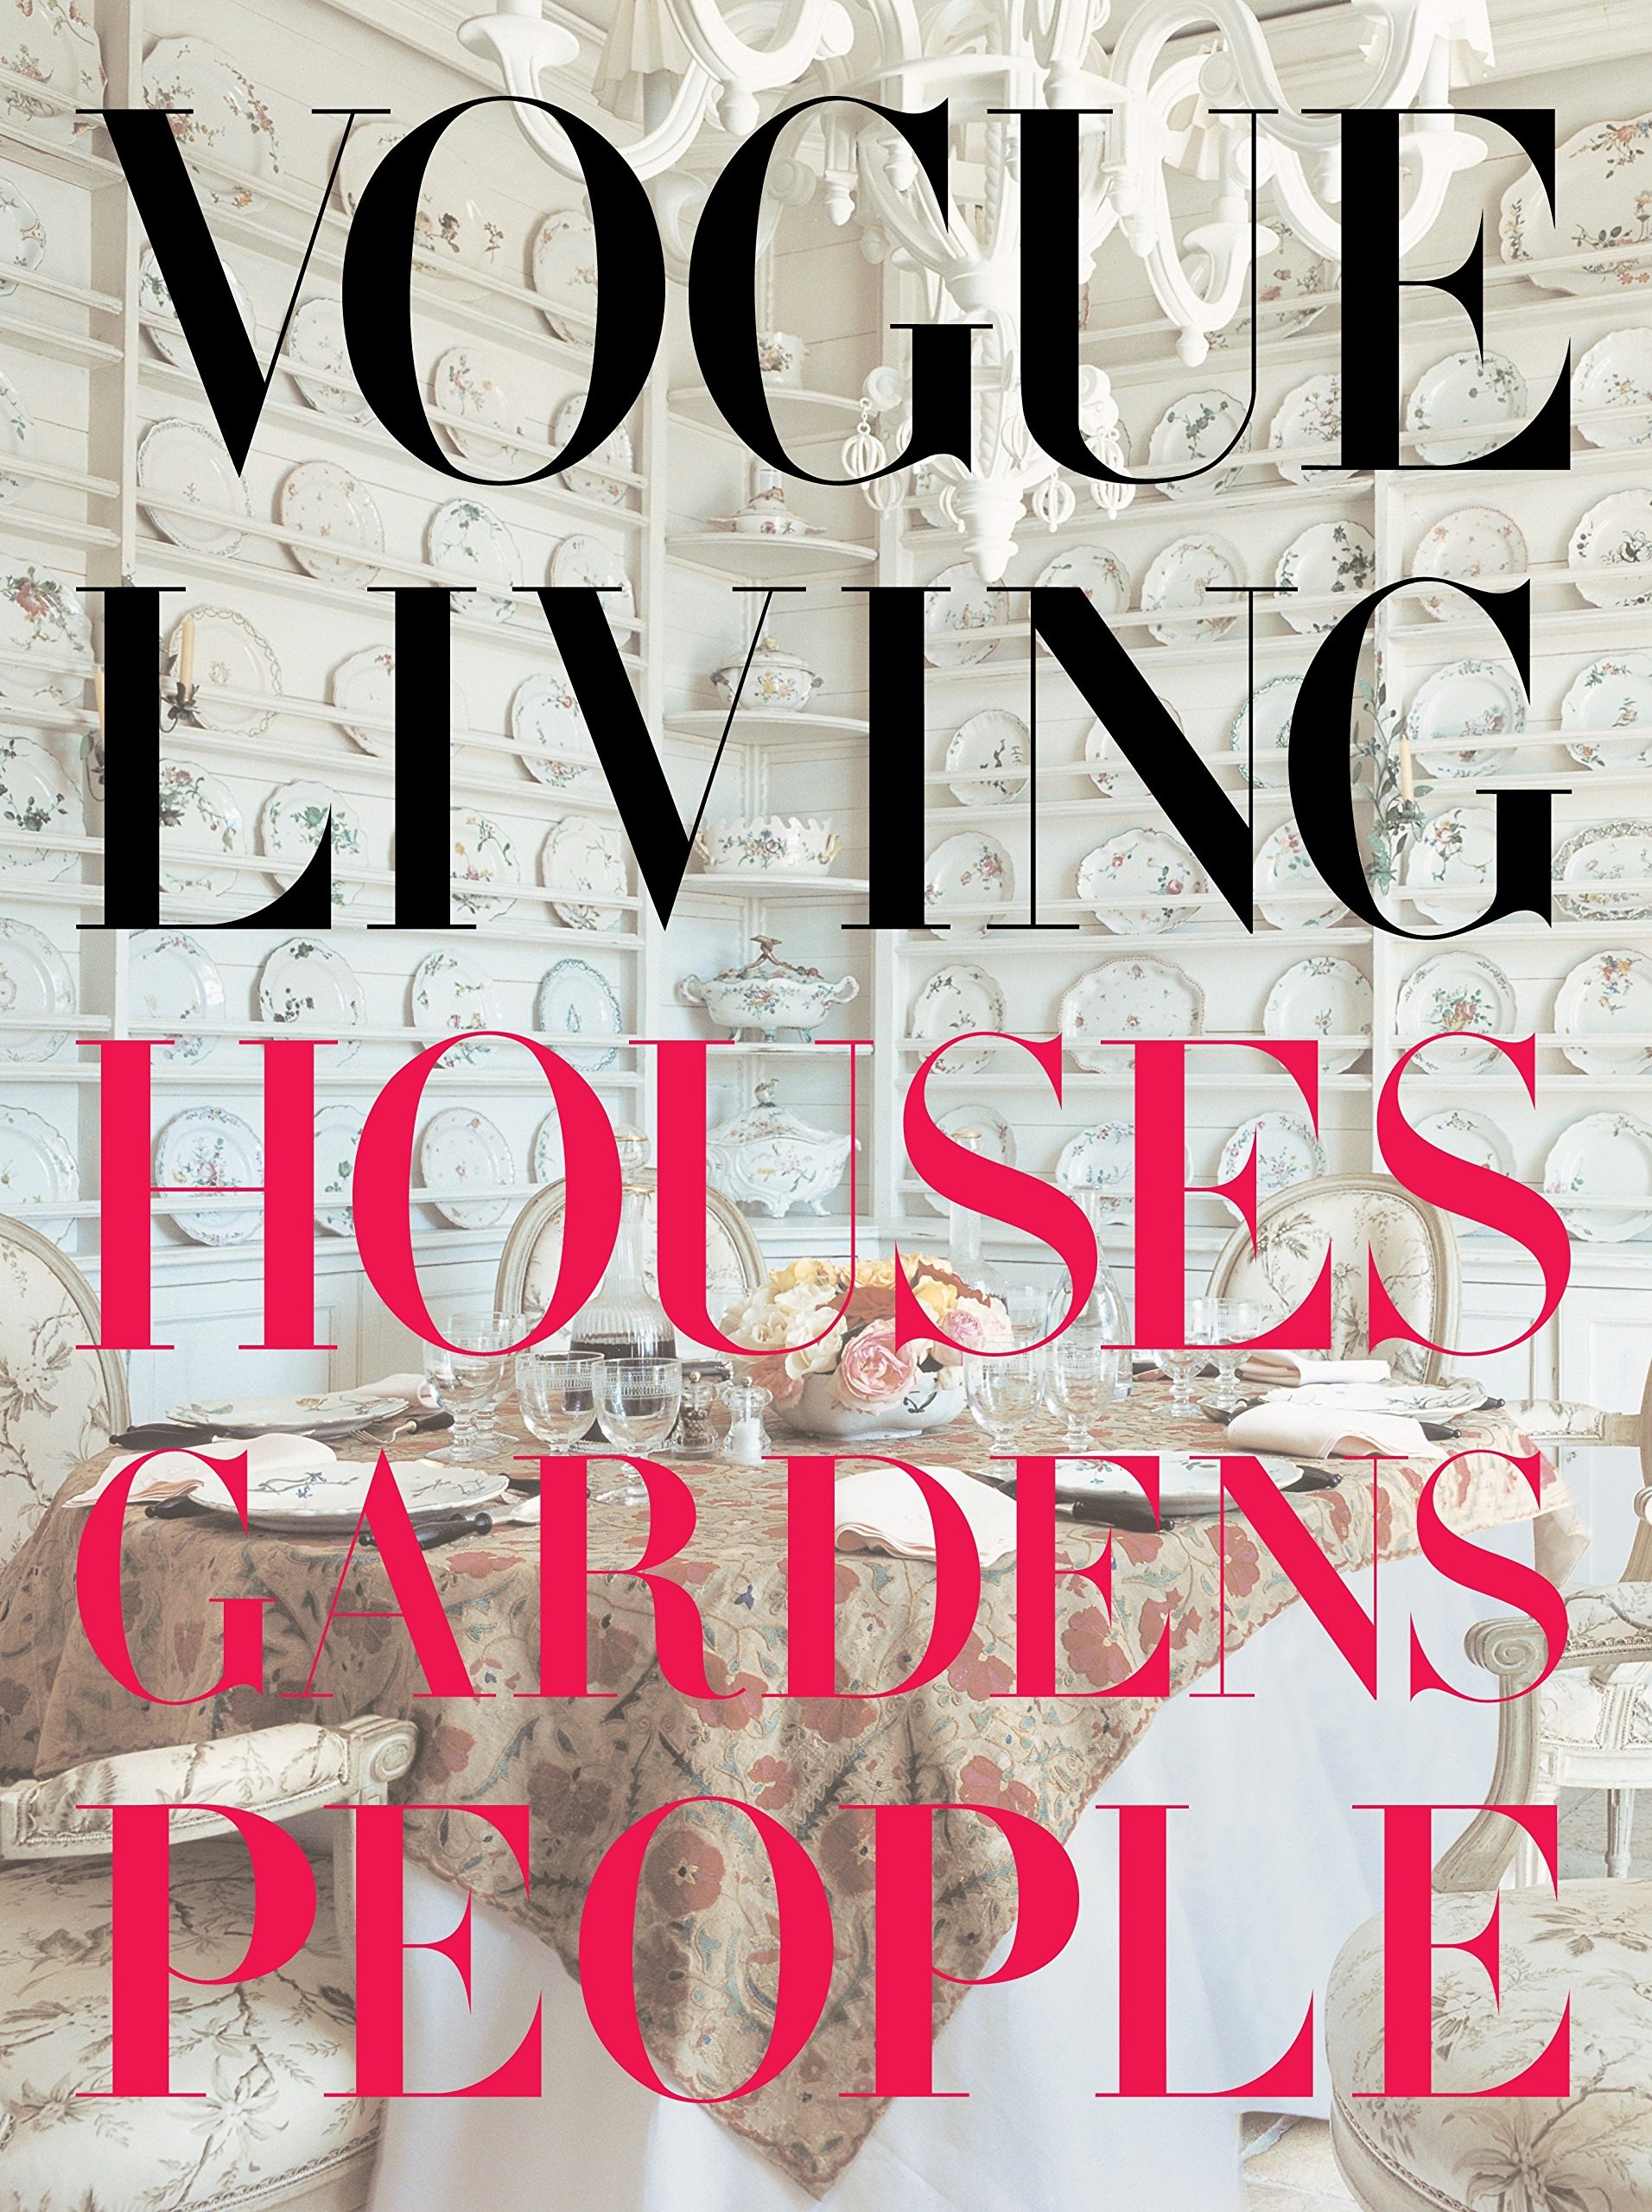 Vogue Living: Houses, Gardens, People by Knopf